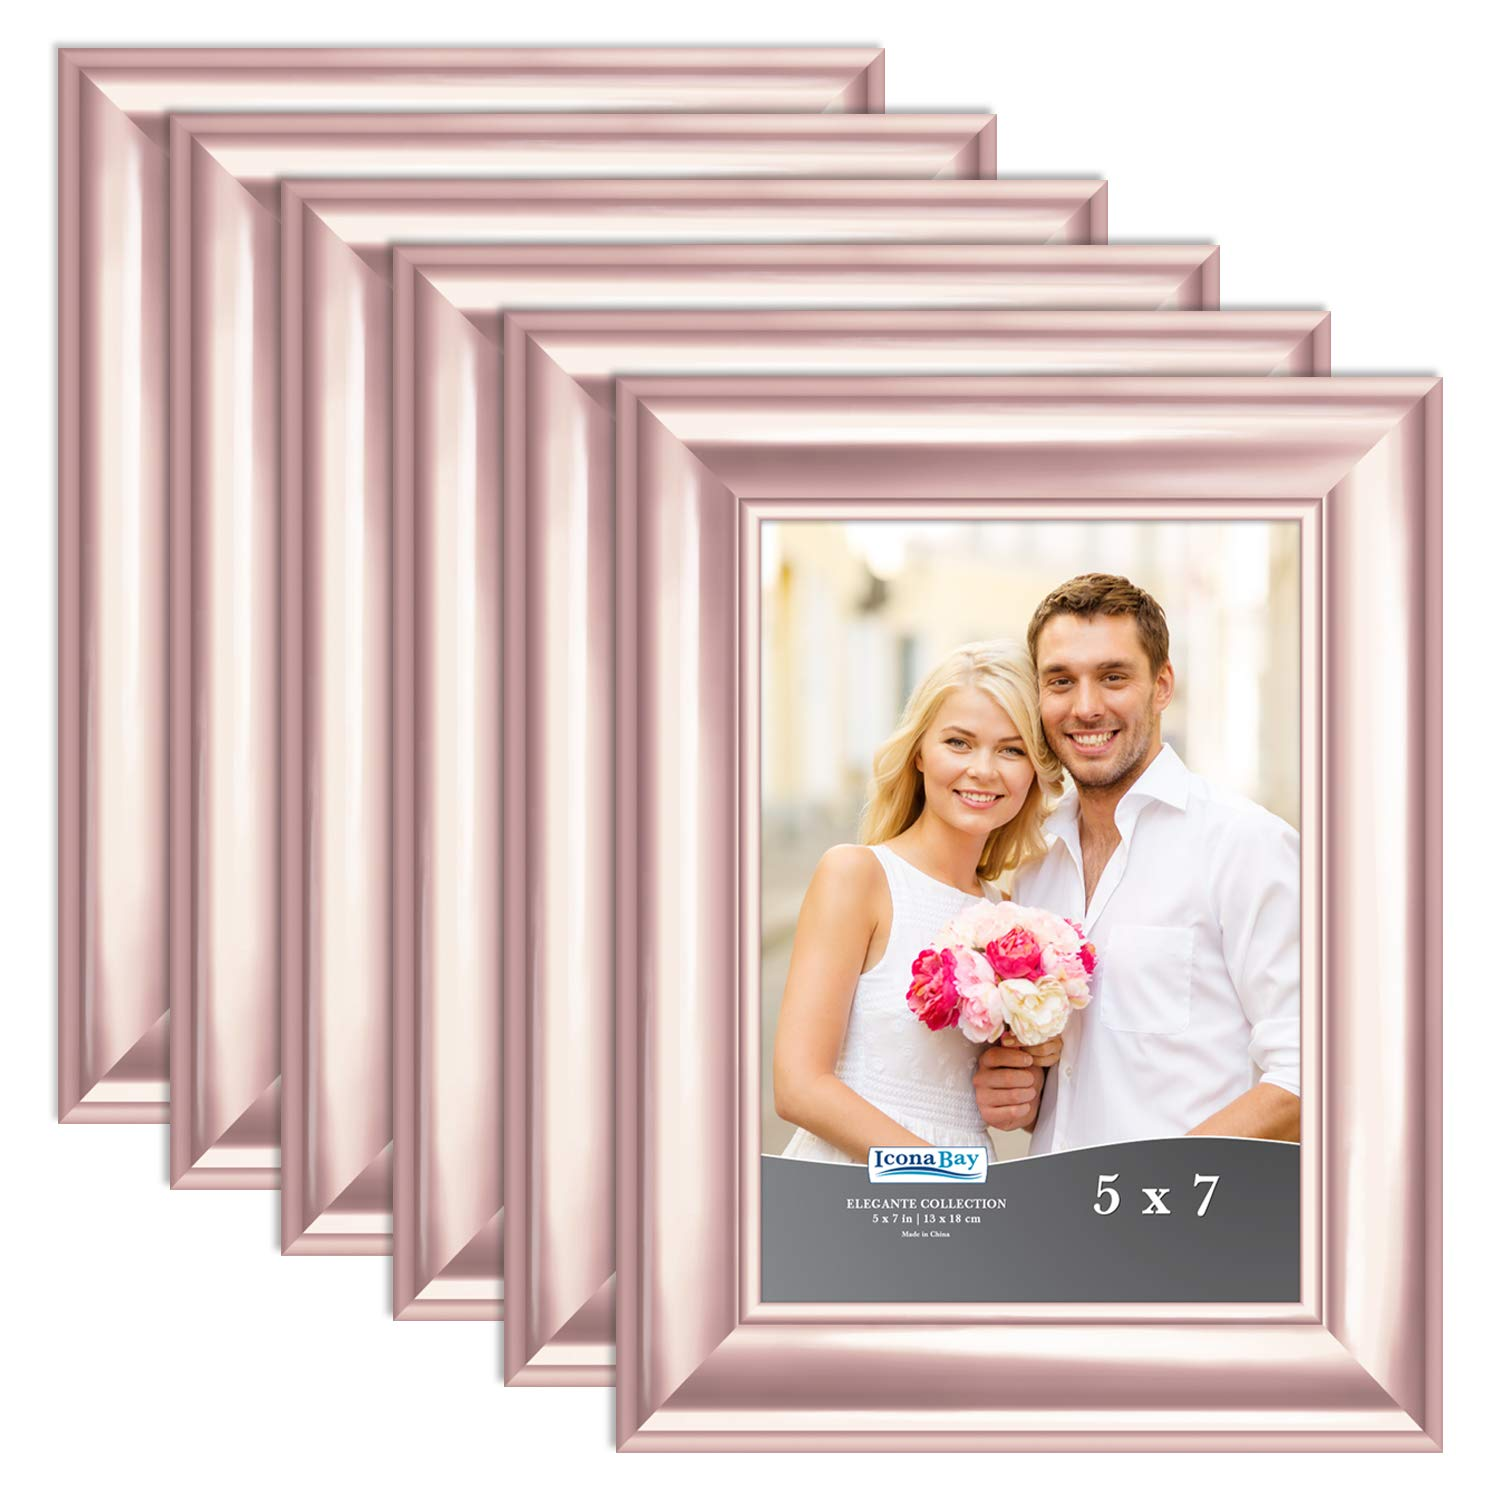 Icona Bay 5x7 Picture Frame (6 Pack, Rose Gold), Rose Gold Photo Frame 5 x 7, Wall Mount or Table Top, Set of 6 Elegante Collection